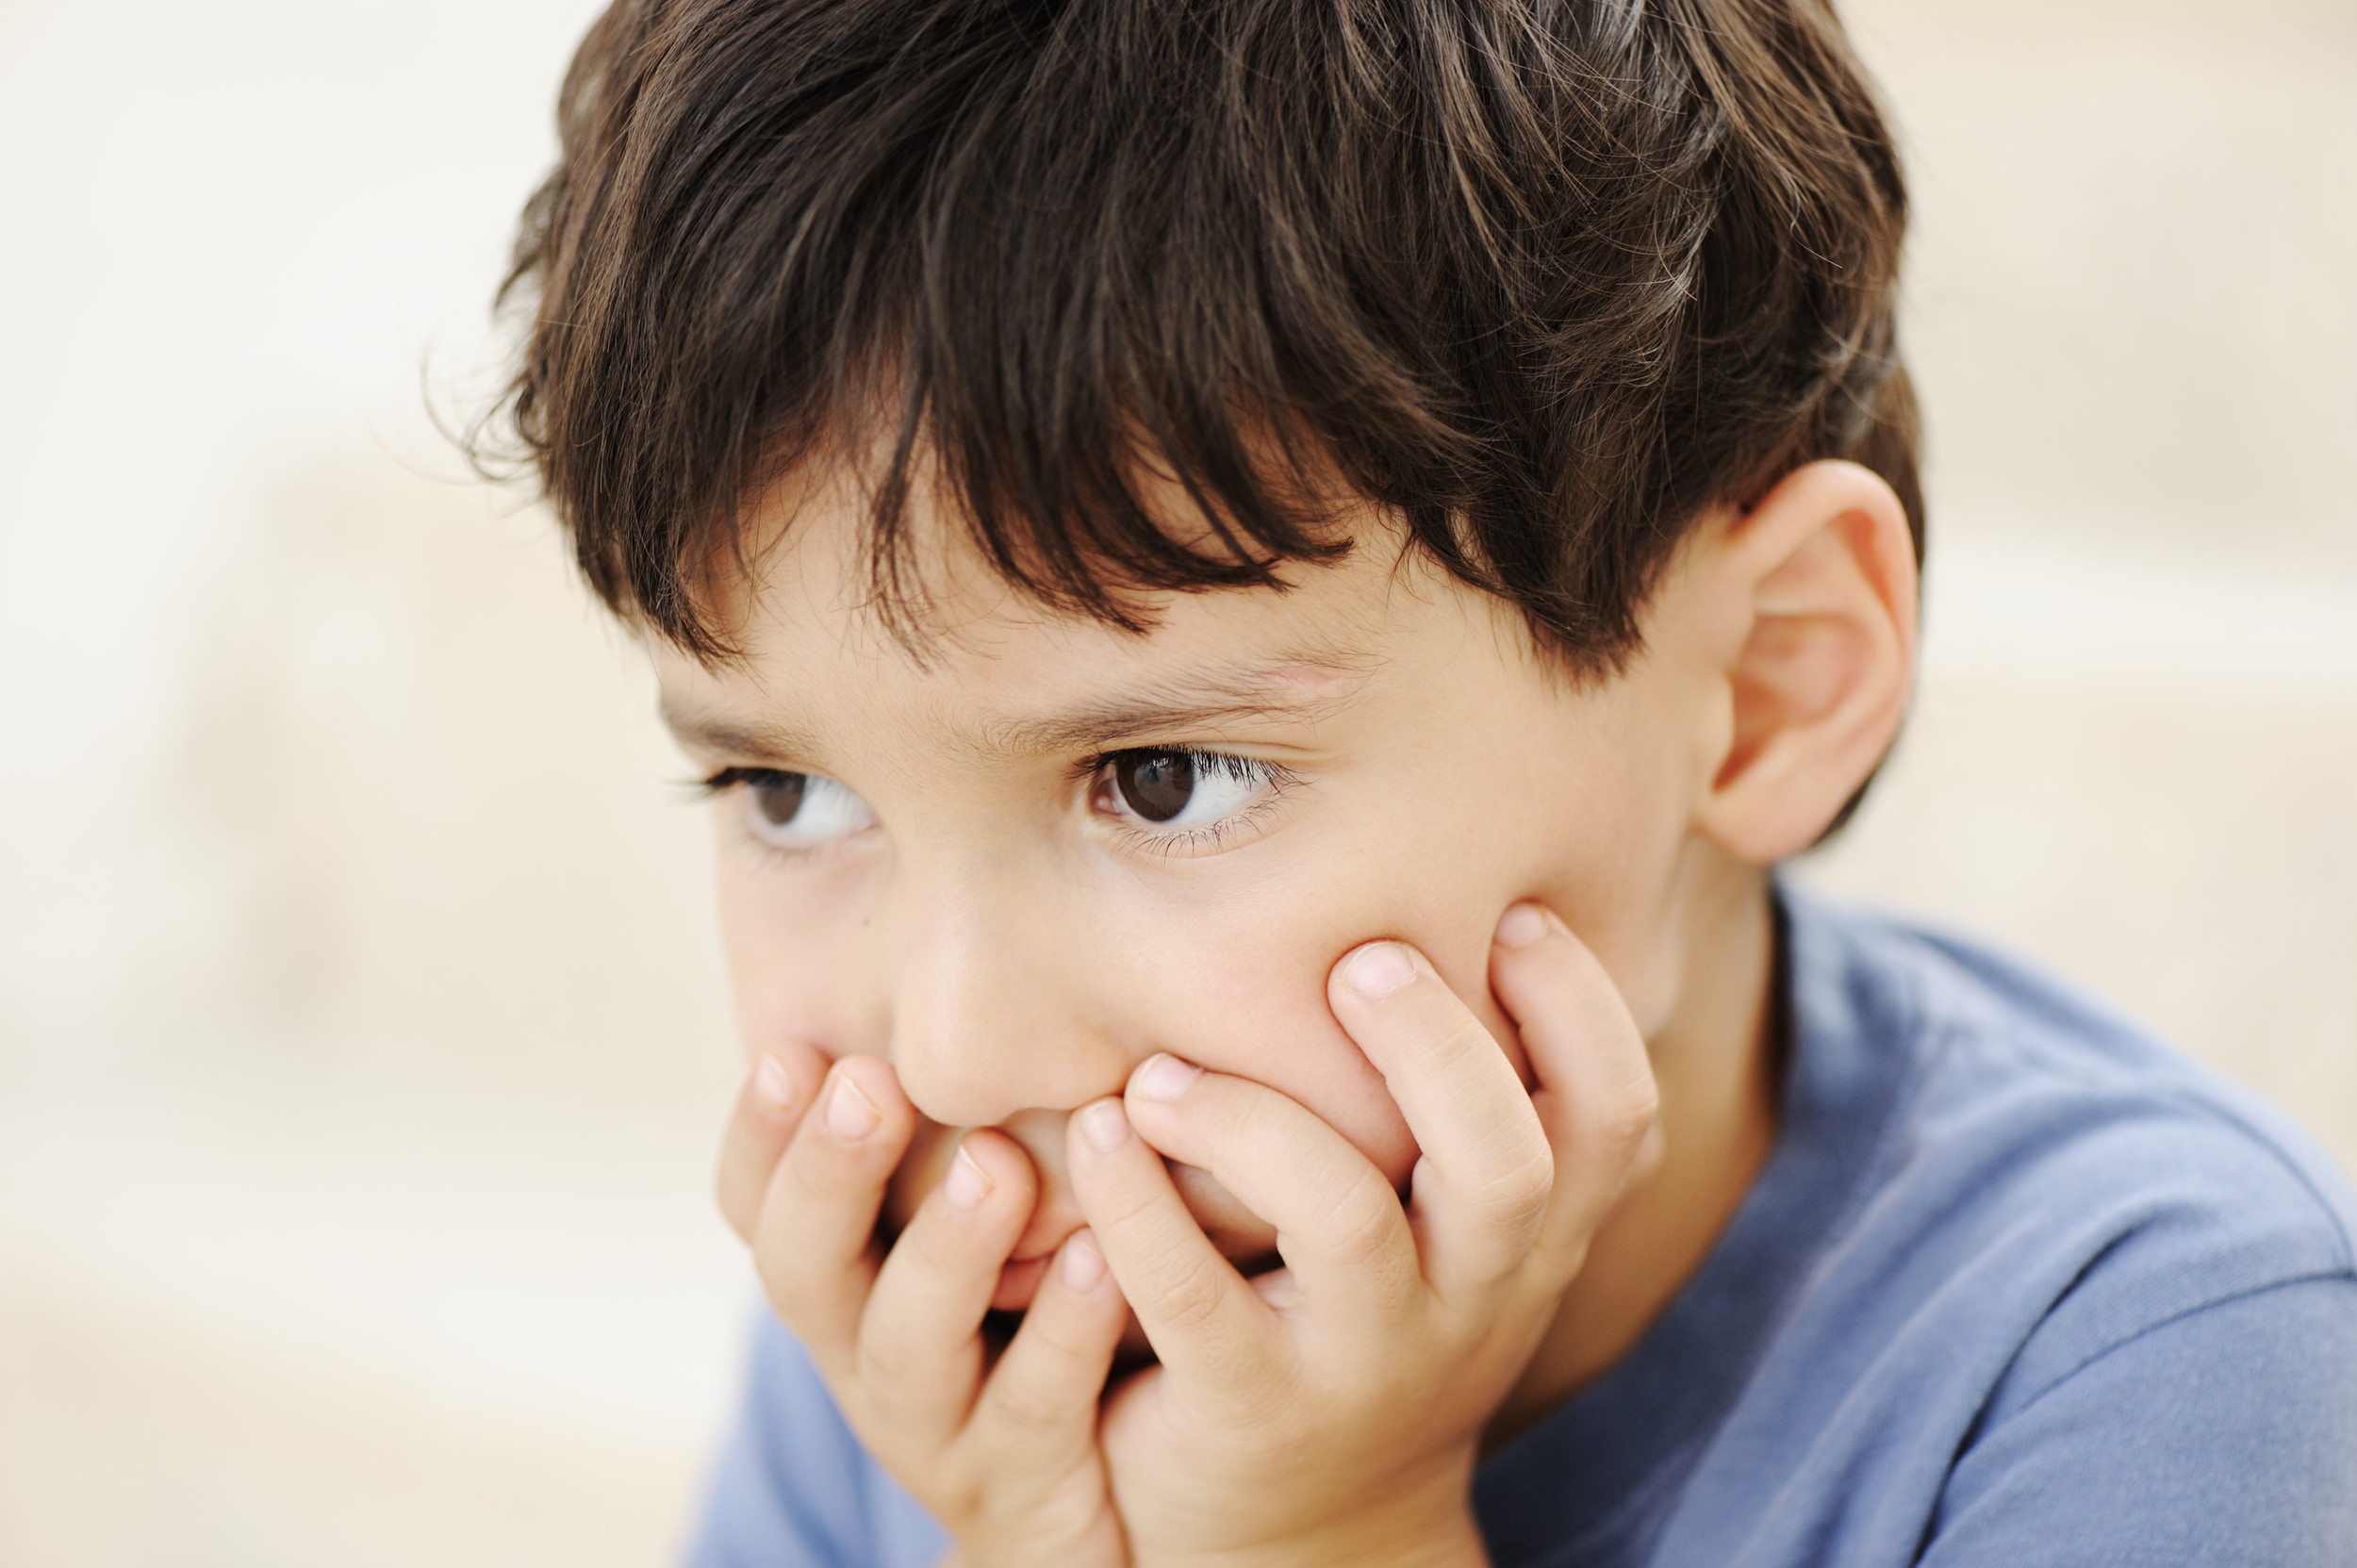 Stressed children - what we can do about it | Peninsula Doctor